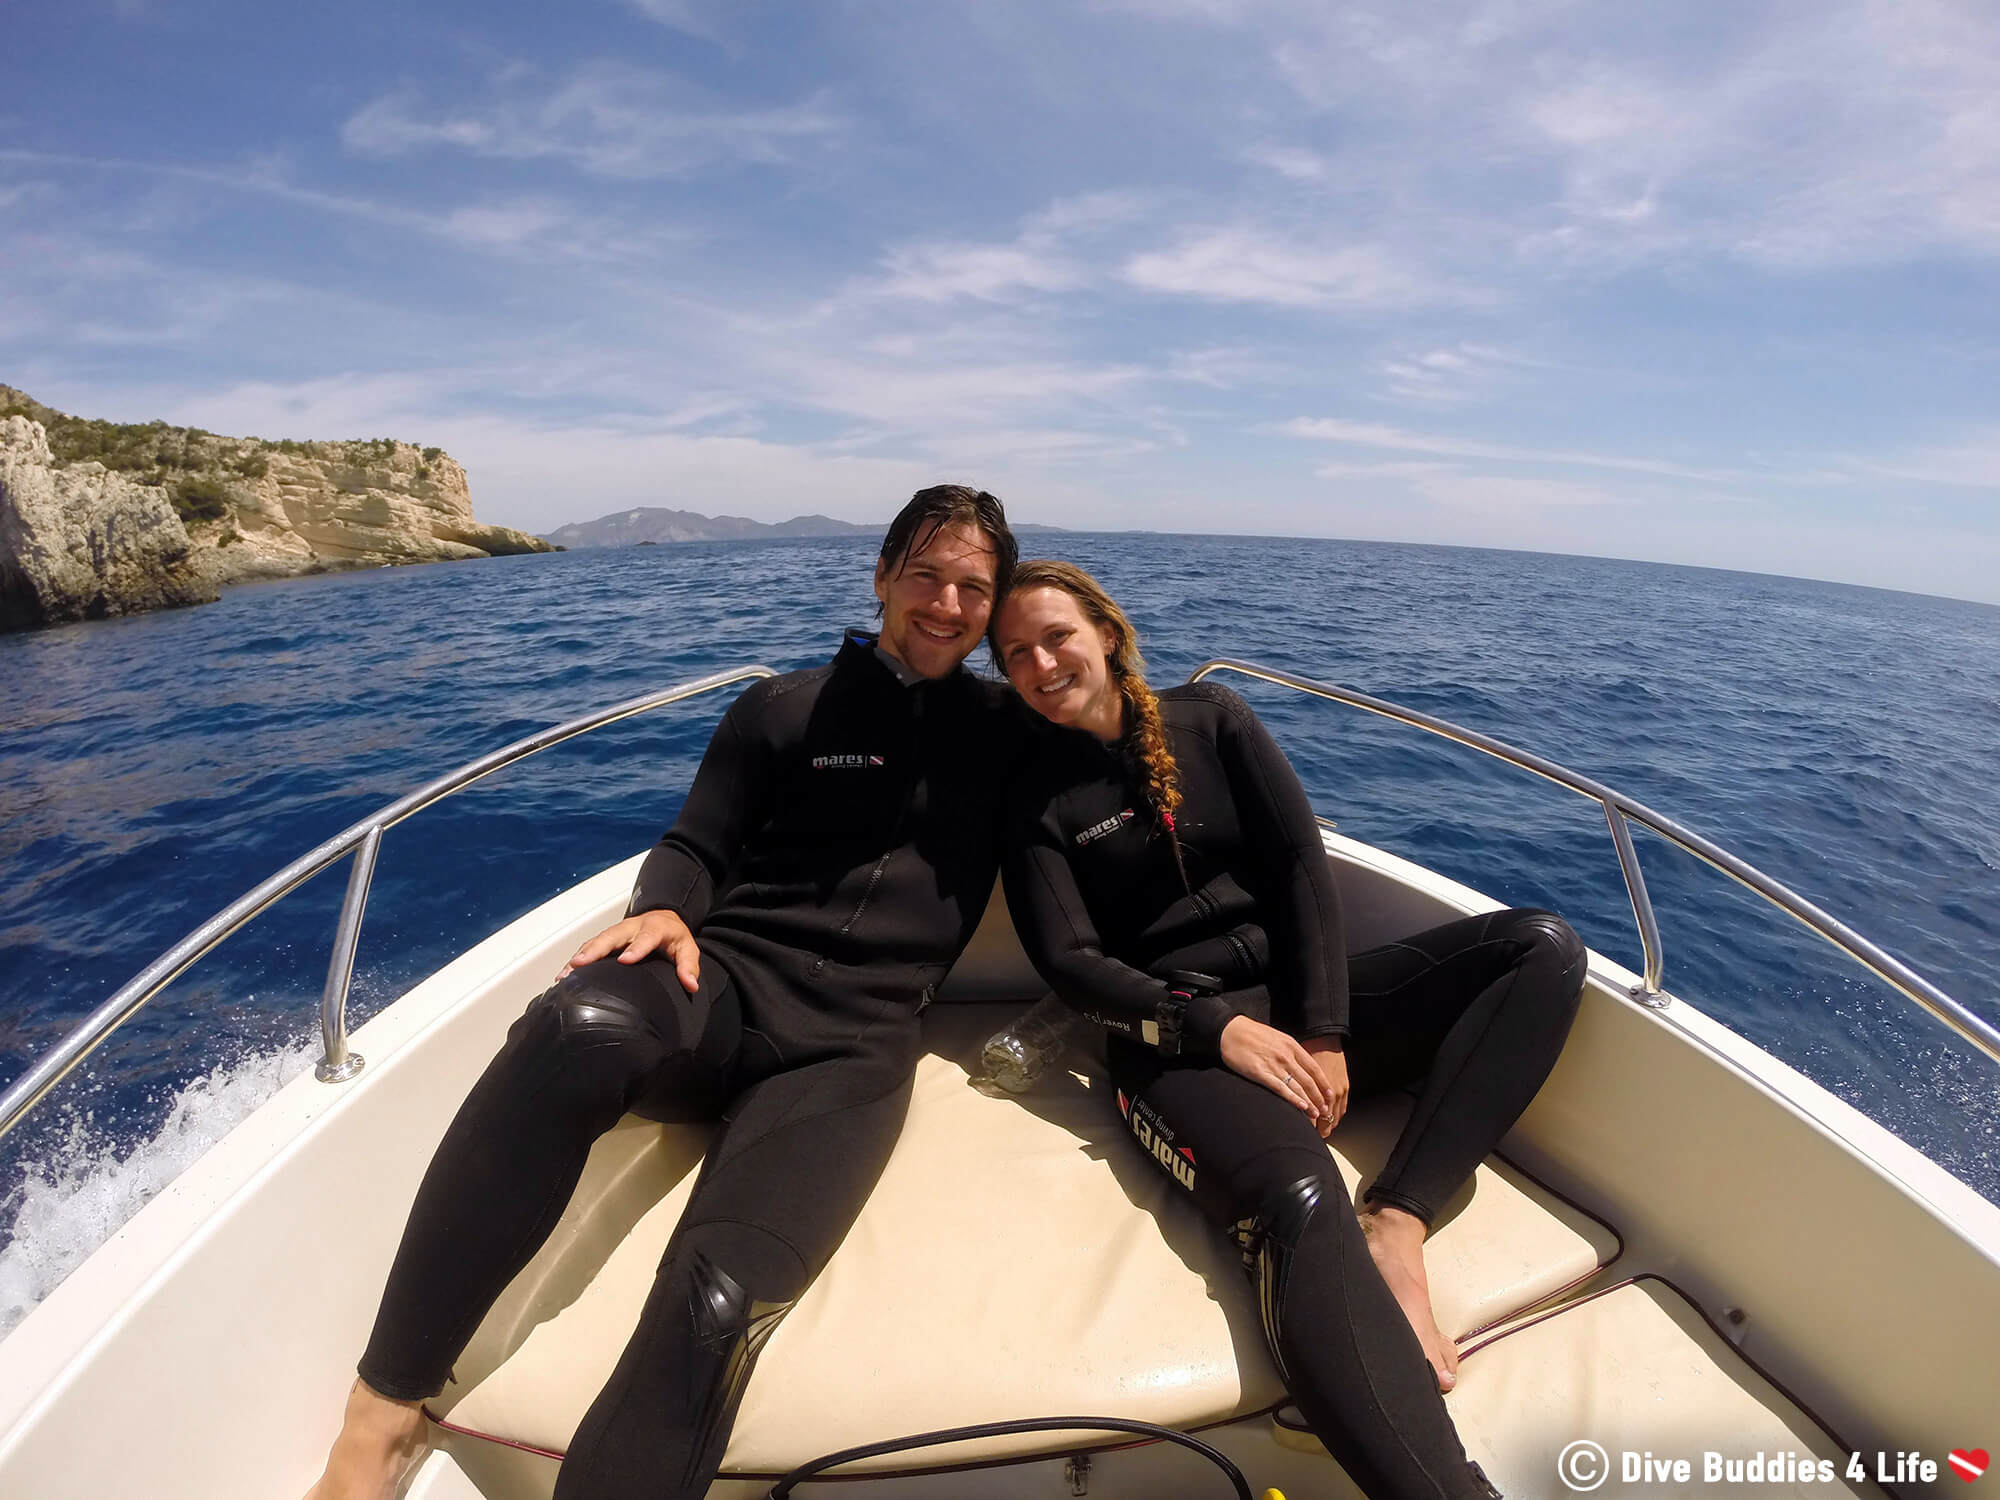 Joey And Ali At The Bow Of A Dive Boat Heading Out On Zakynthos Island To Go Scuba Diving, Greece, Europe